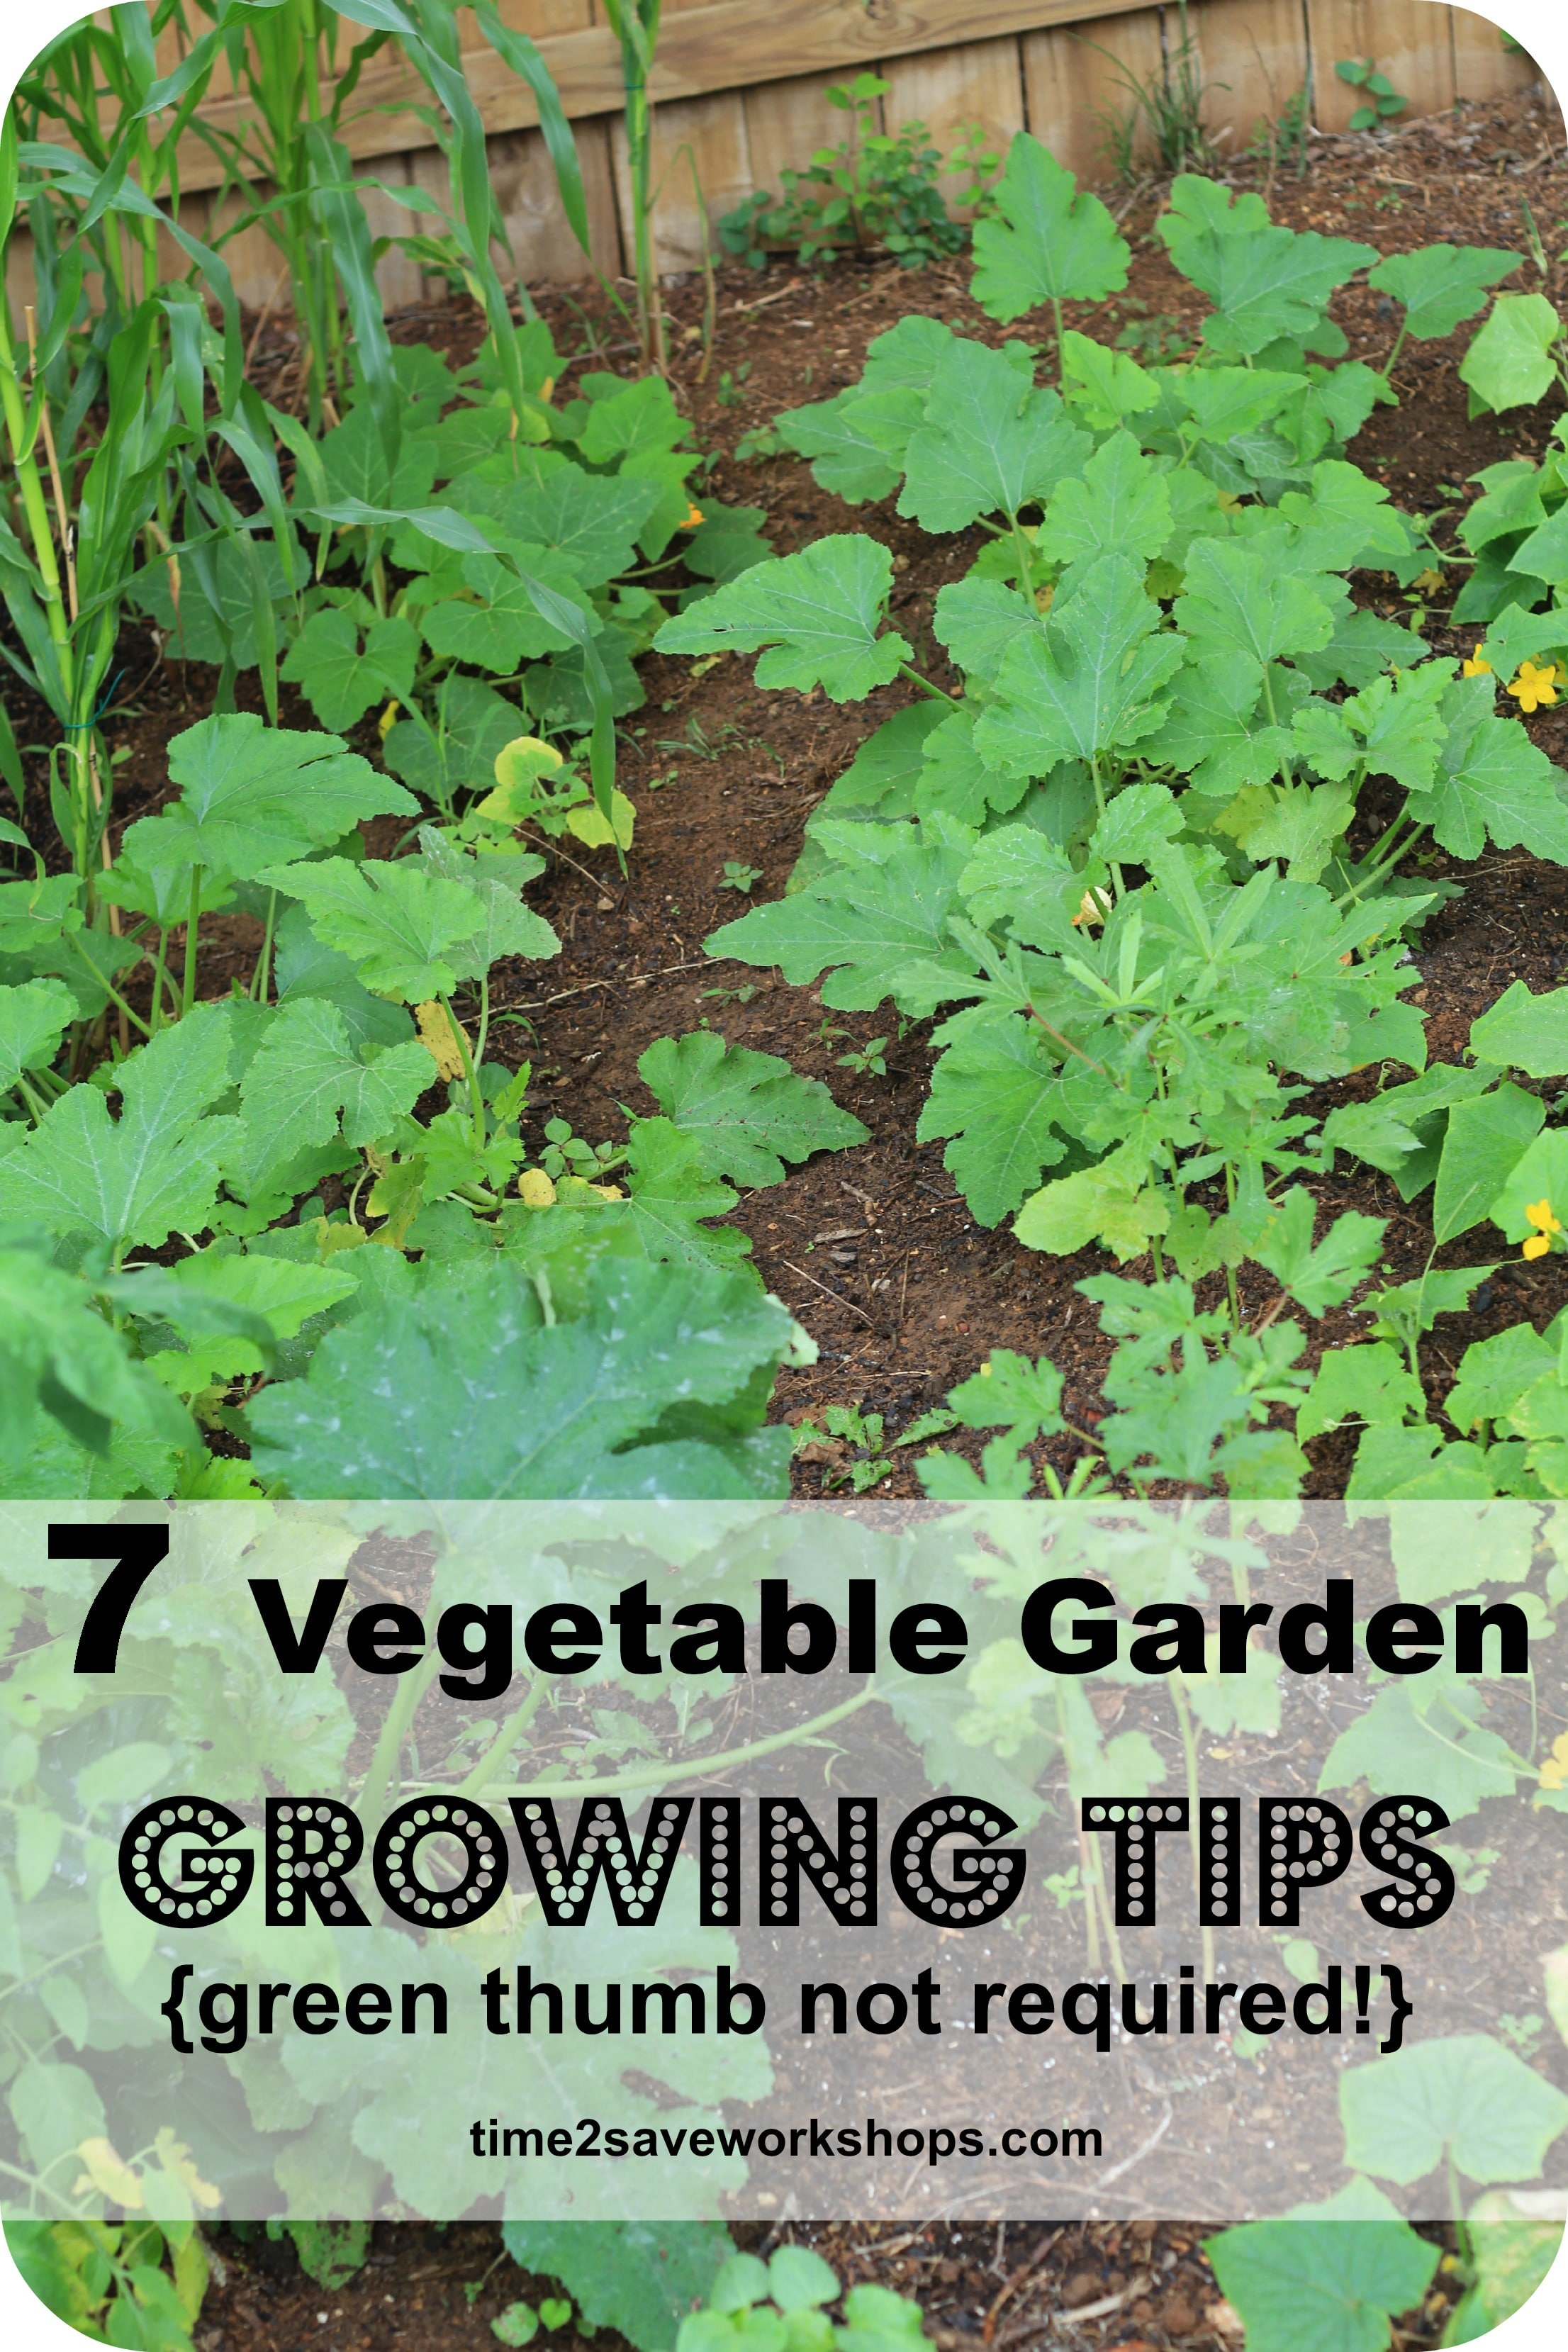 Green Up Your Thumb: Tips for a Beginning Gardener